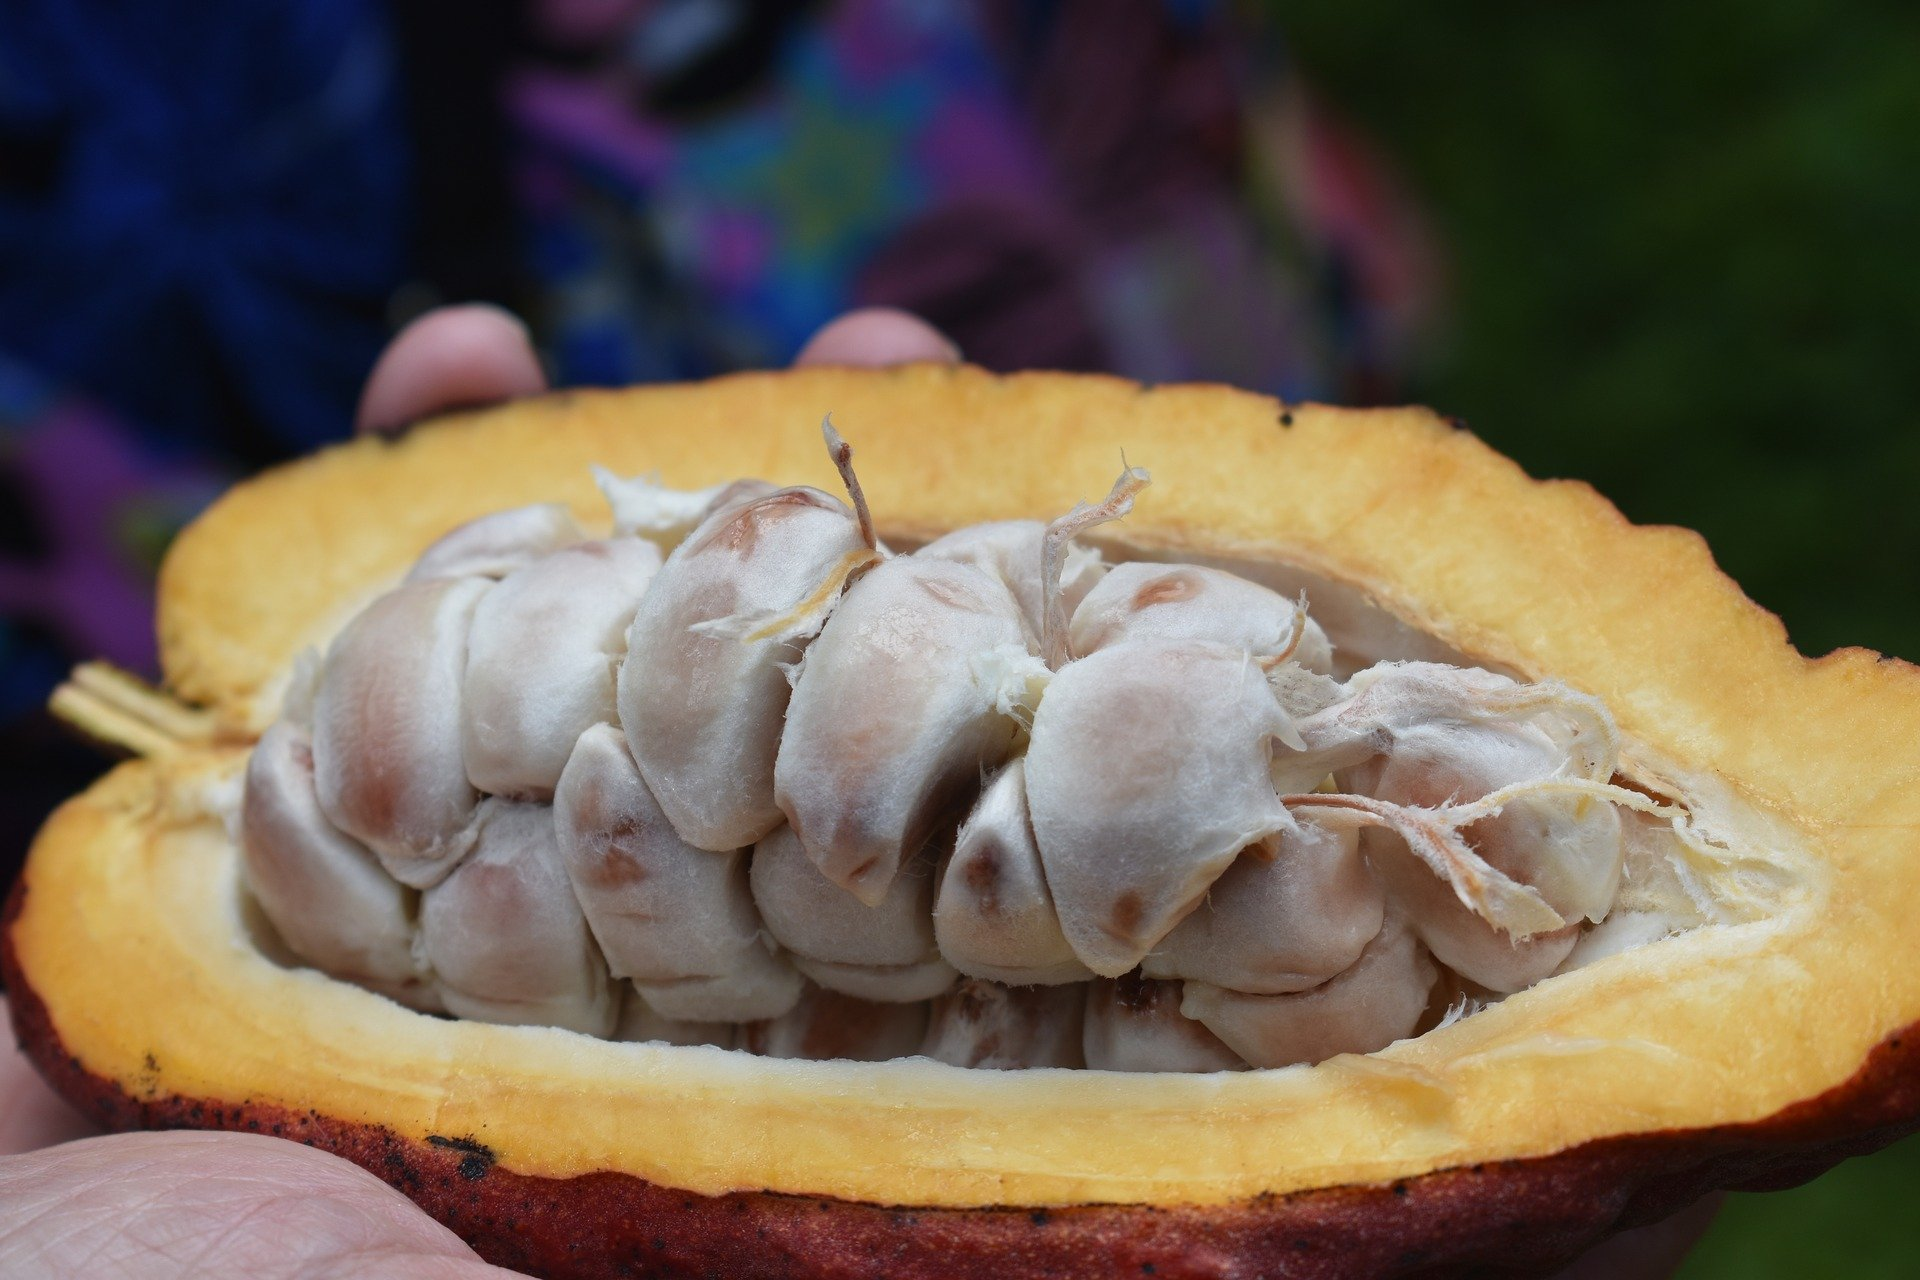 what is chocolate made of? cocoa pod with seeds and cocoa